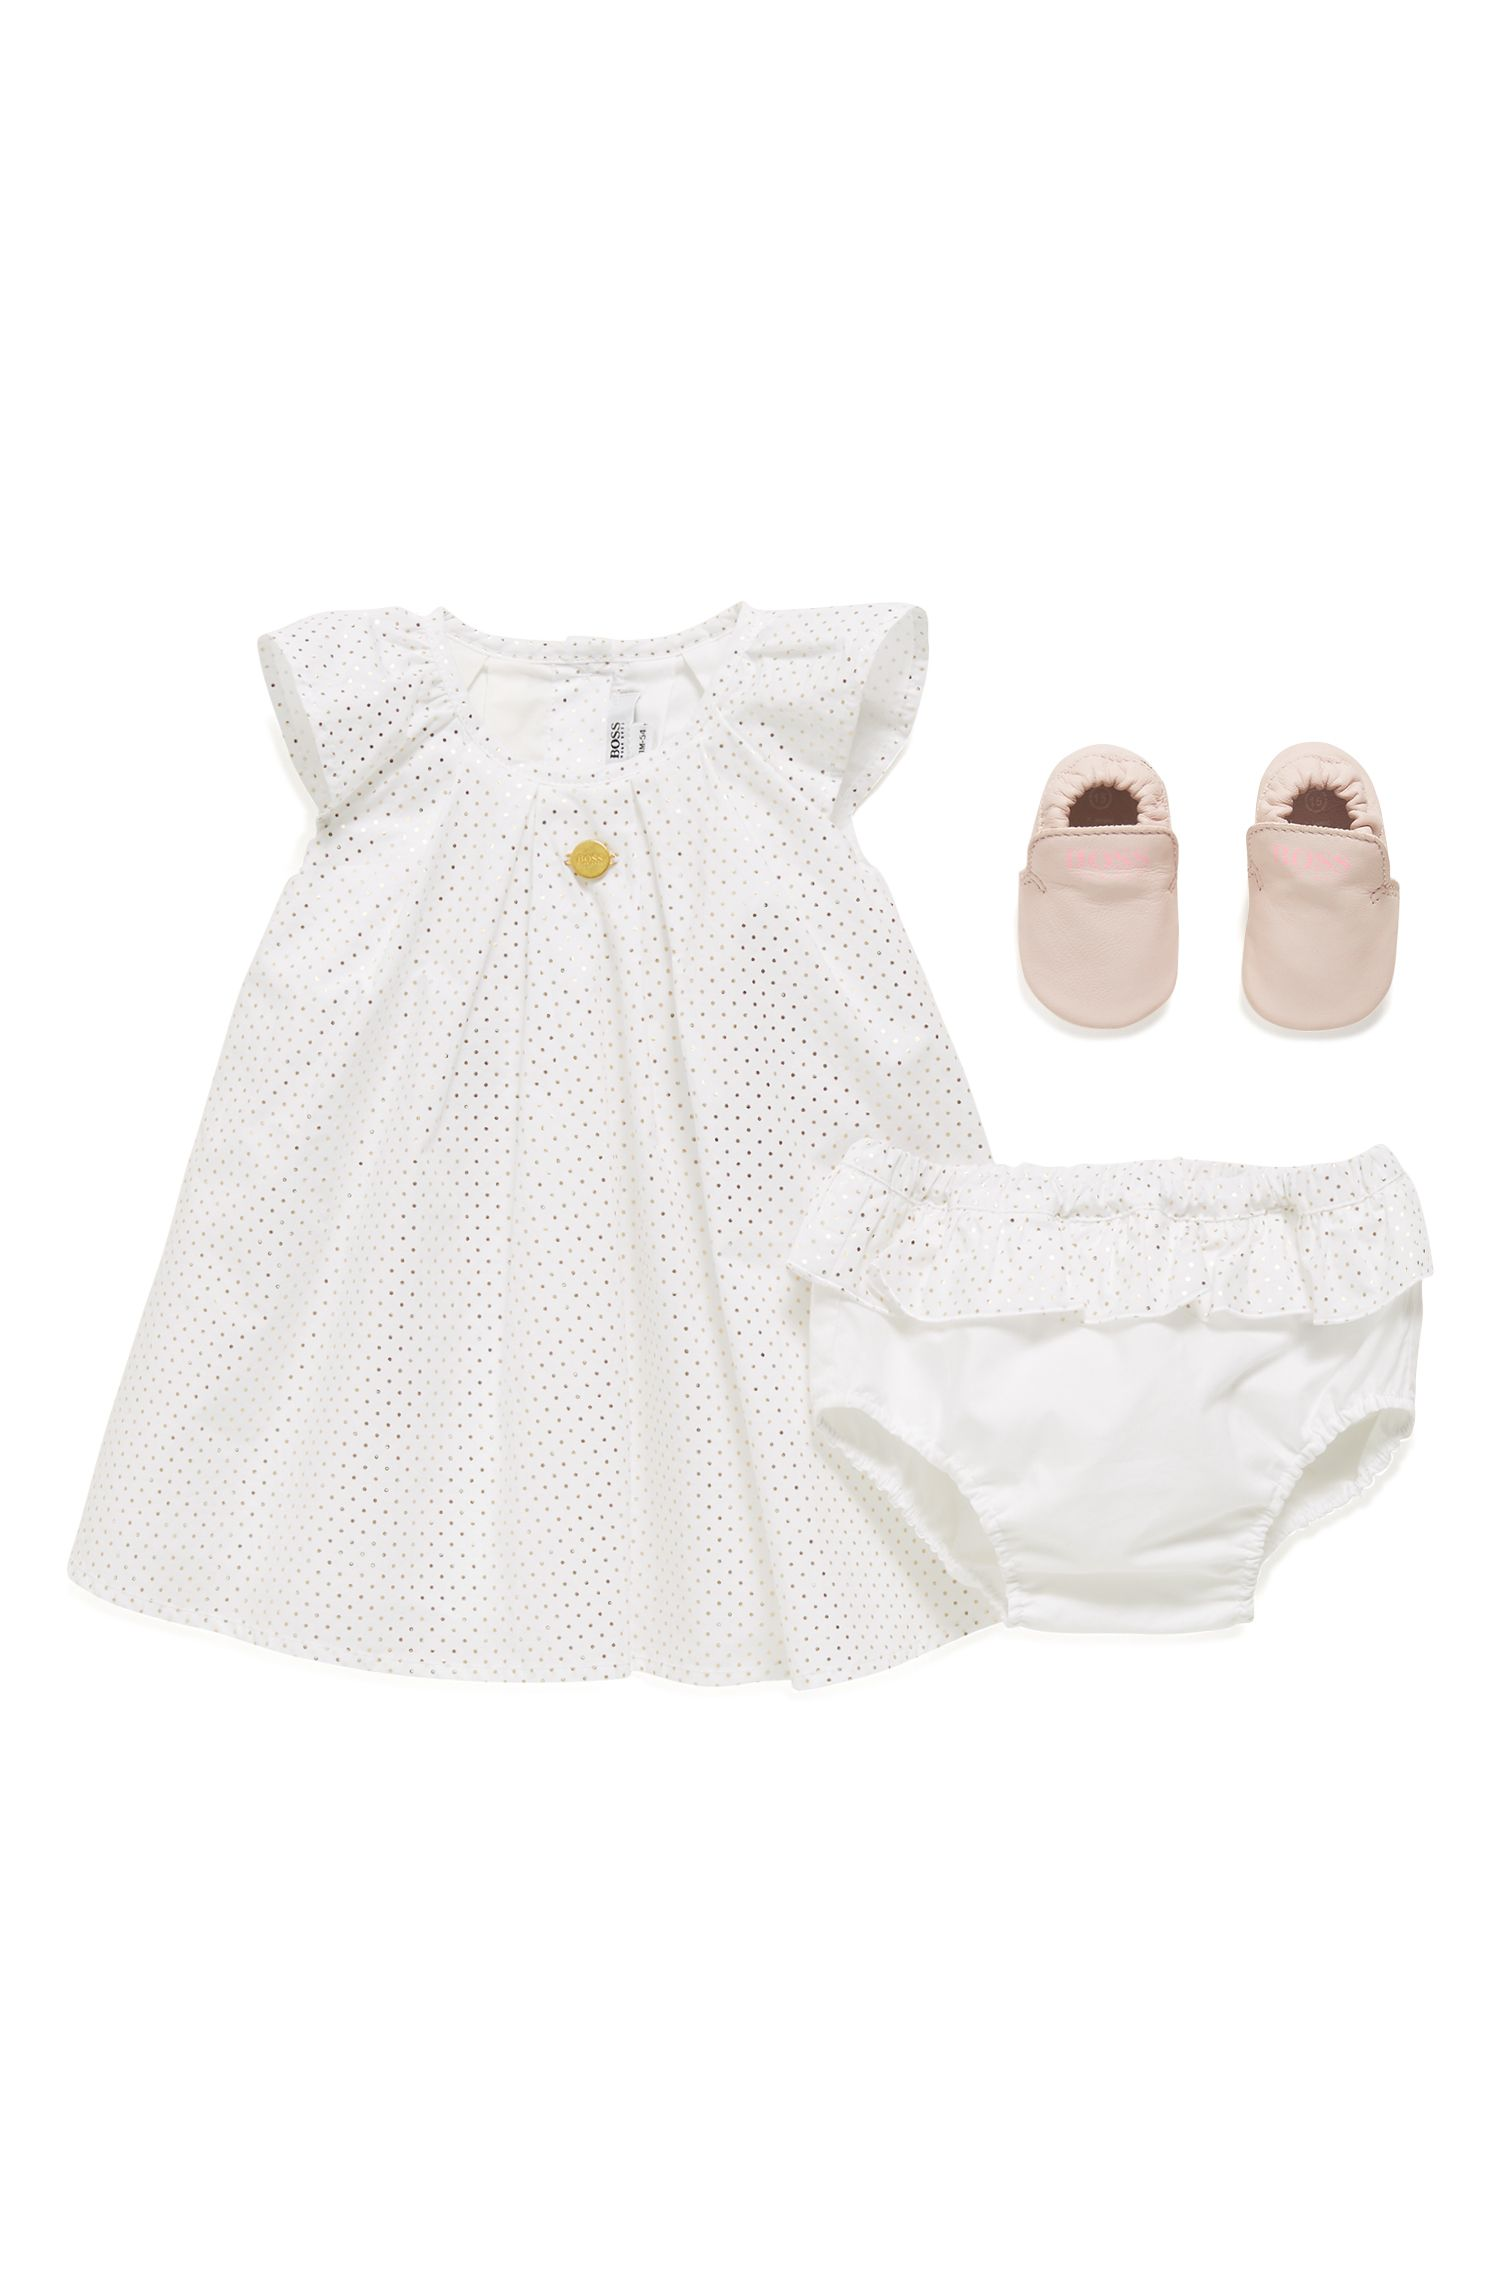 Baby dress and bloomers in cotton percale